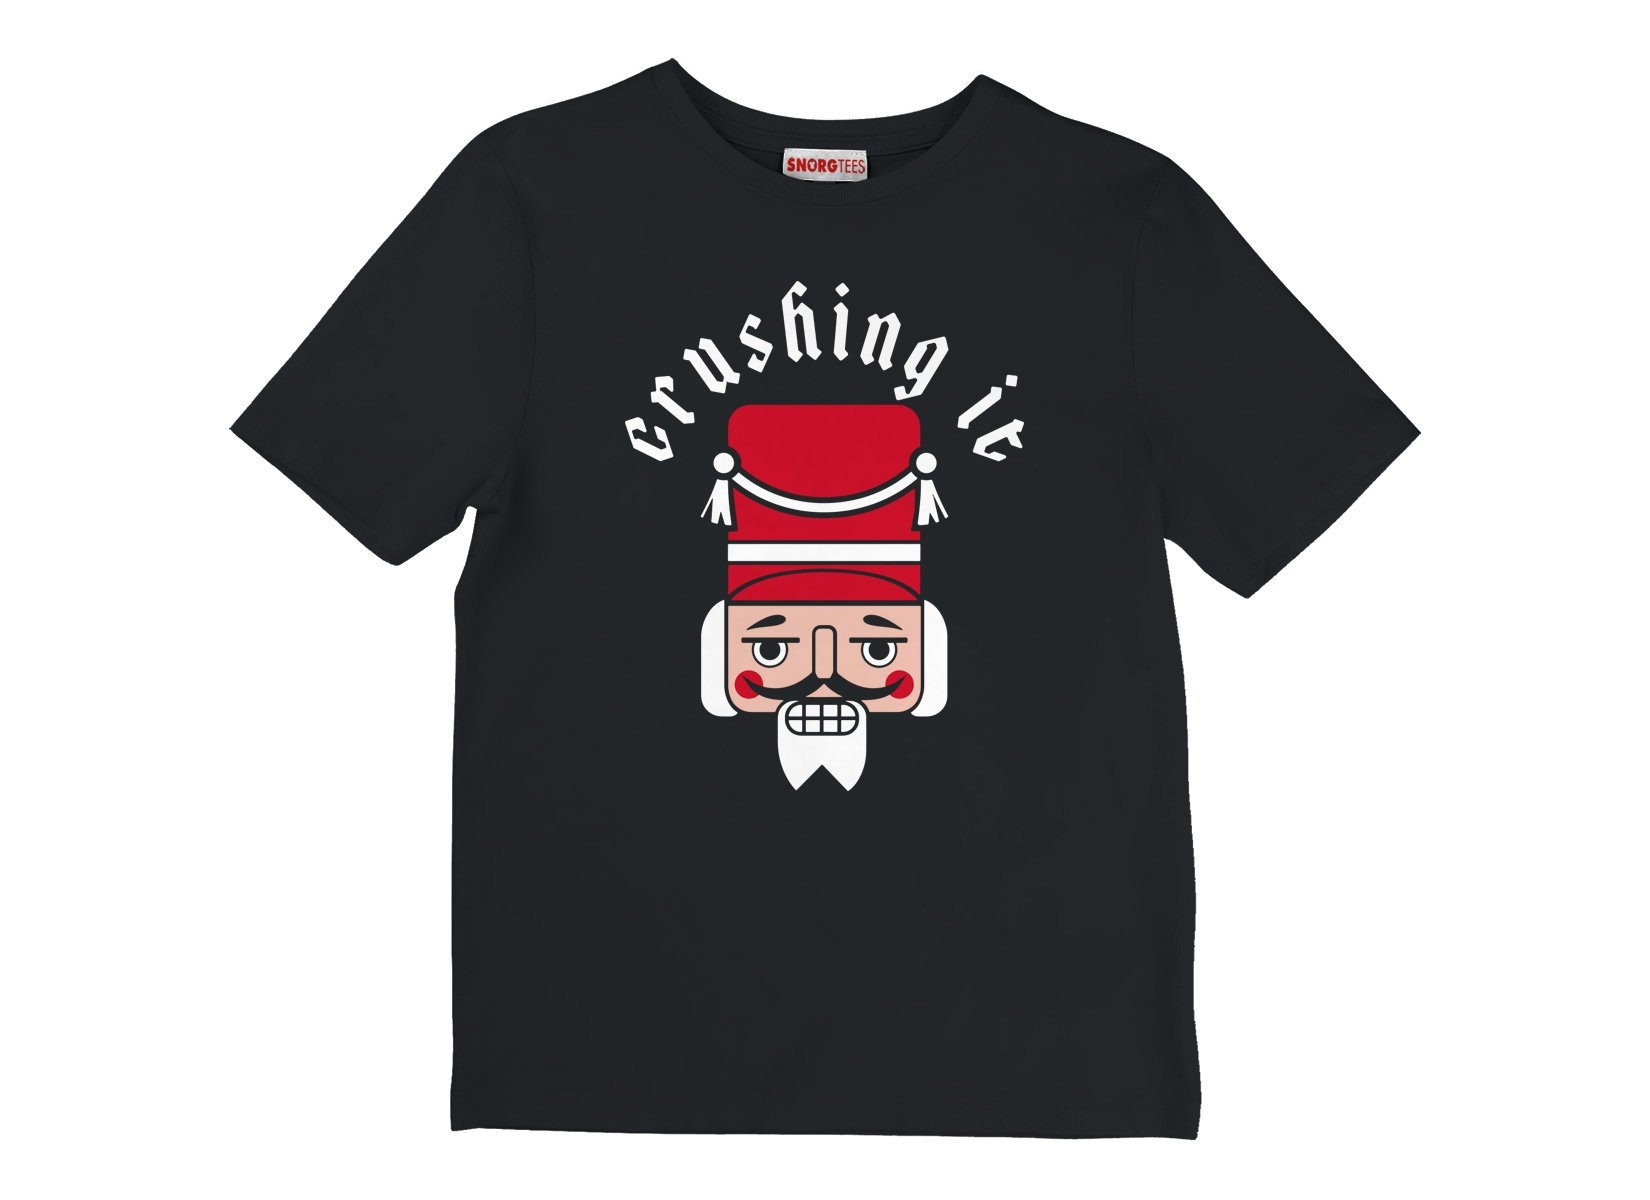 Crushing It on Kids T-Shirt